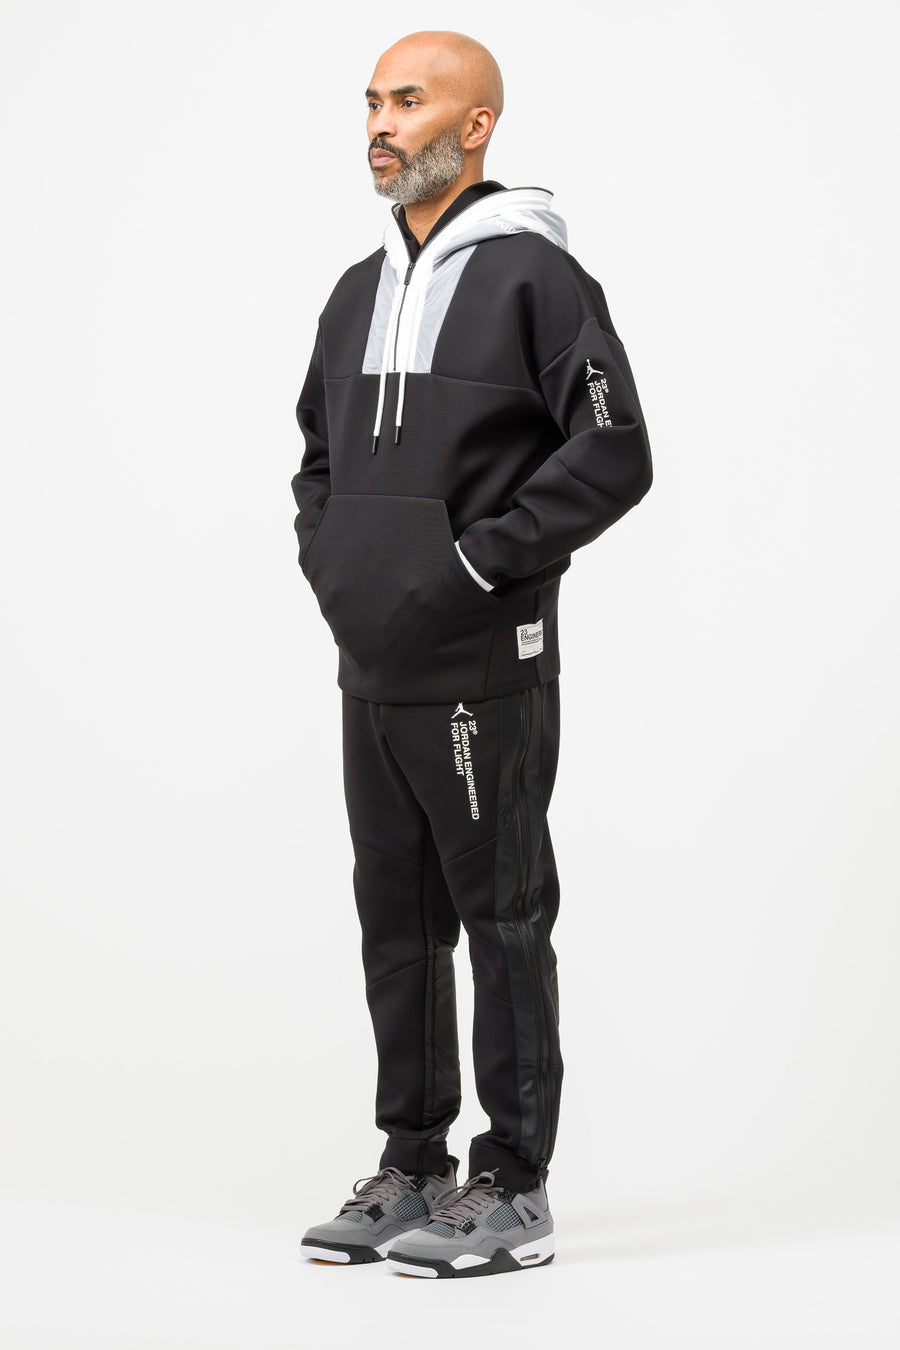 Jordan 23 Engineered Half Zip Hoodie in Black/White - Notre